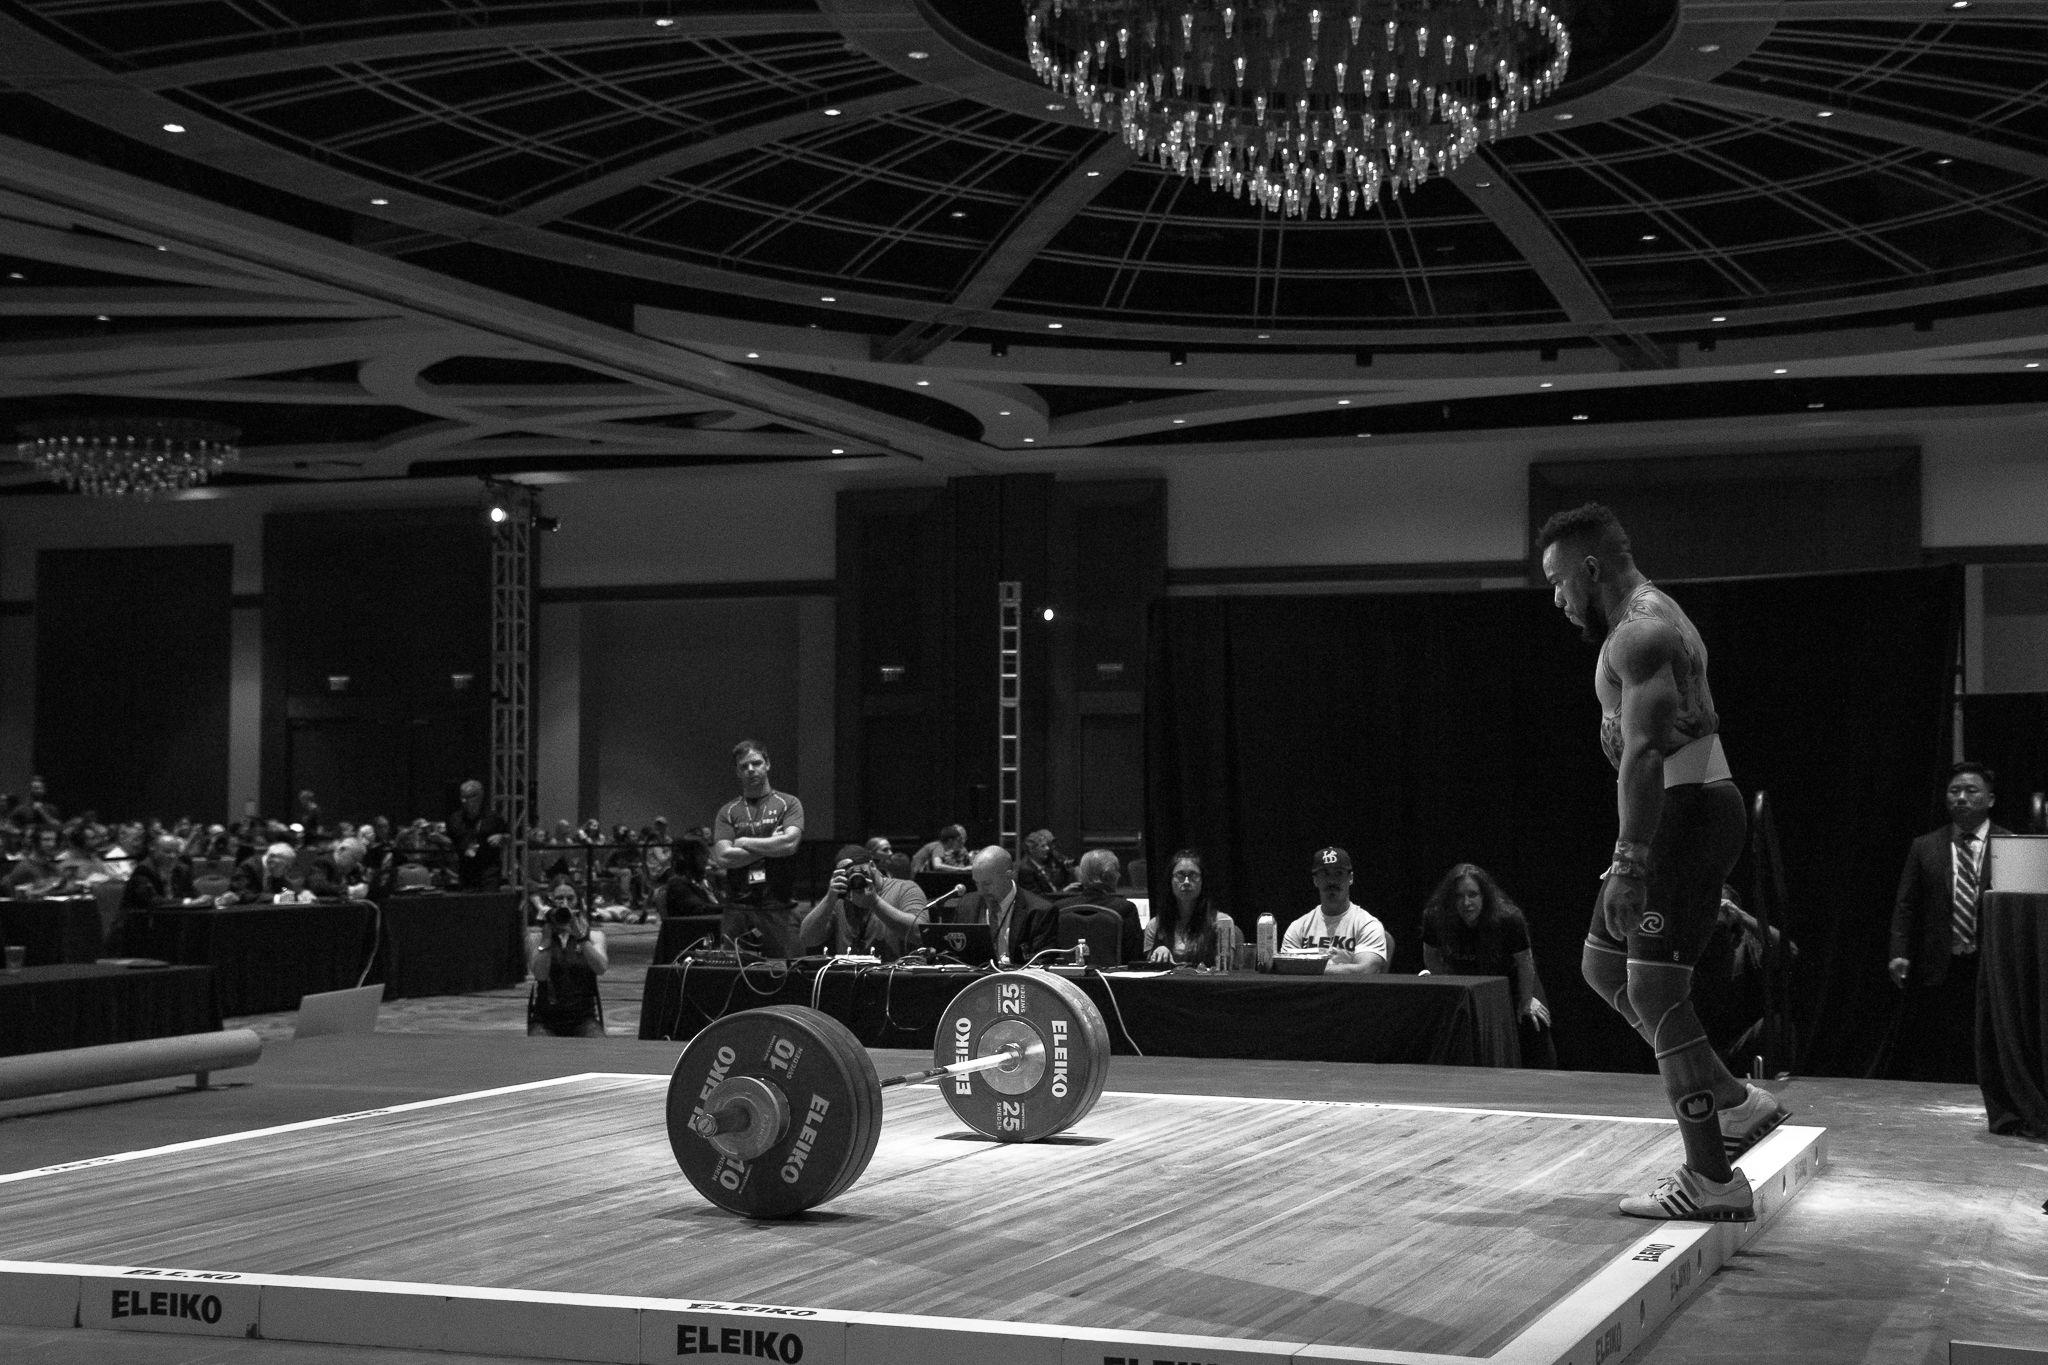 american-open-photos-session-a-weightlifters-weightlifting-photography-everyday-lifters (1 of 10).jpg